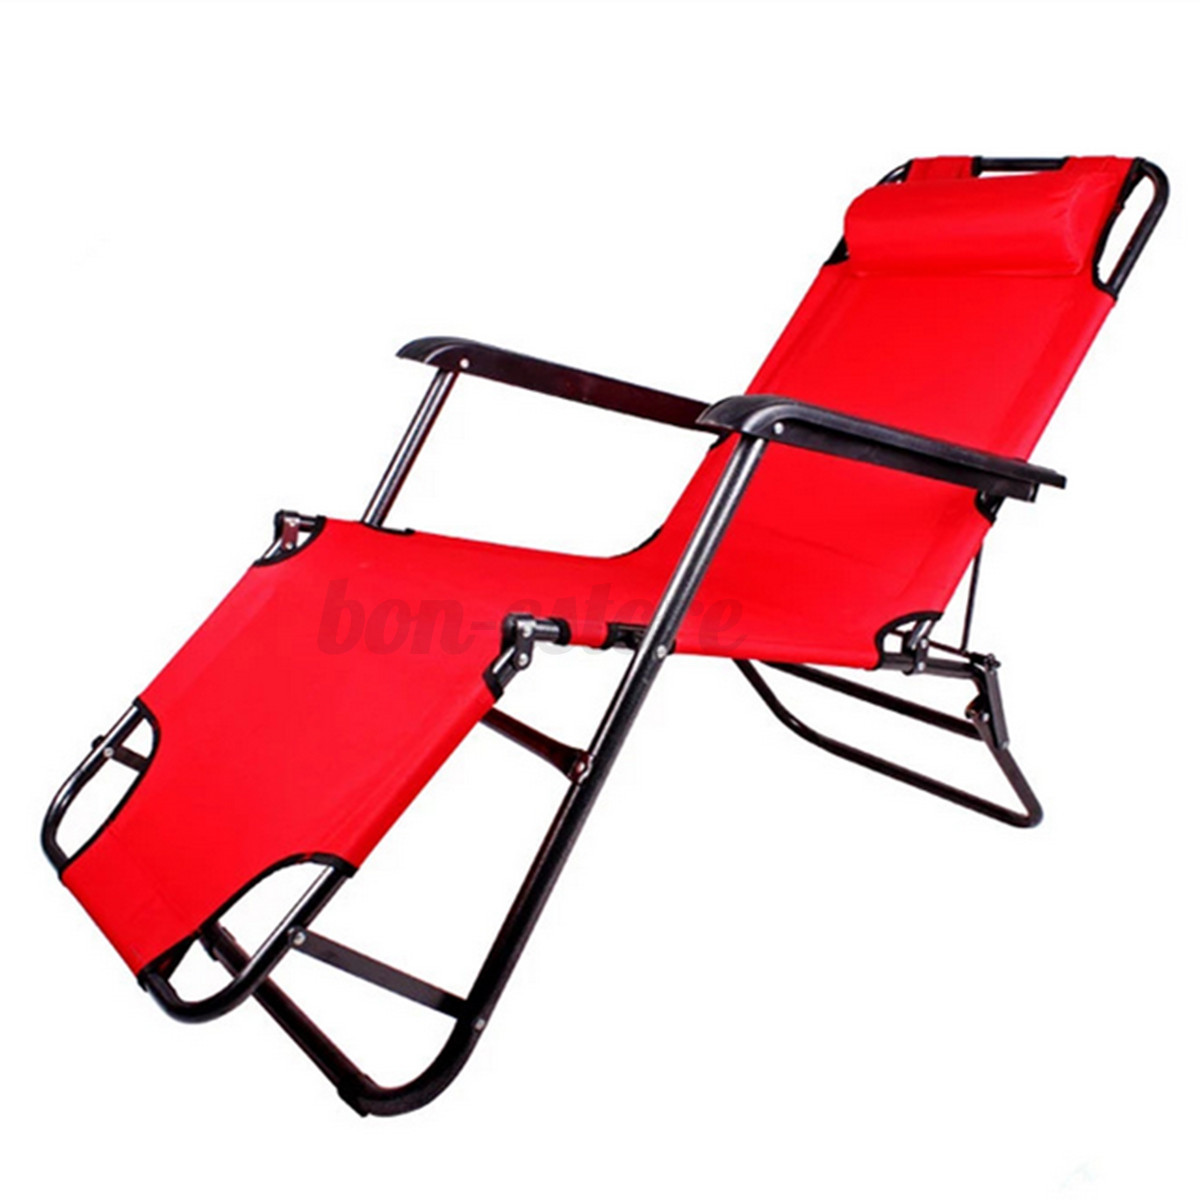 Outdoor Folding Reclining Beach Sun Patio Chaise Lounge Chair Pool Lawn Loung